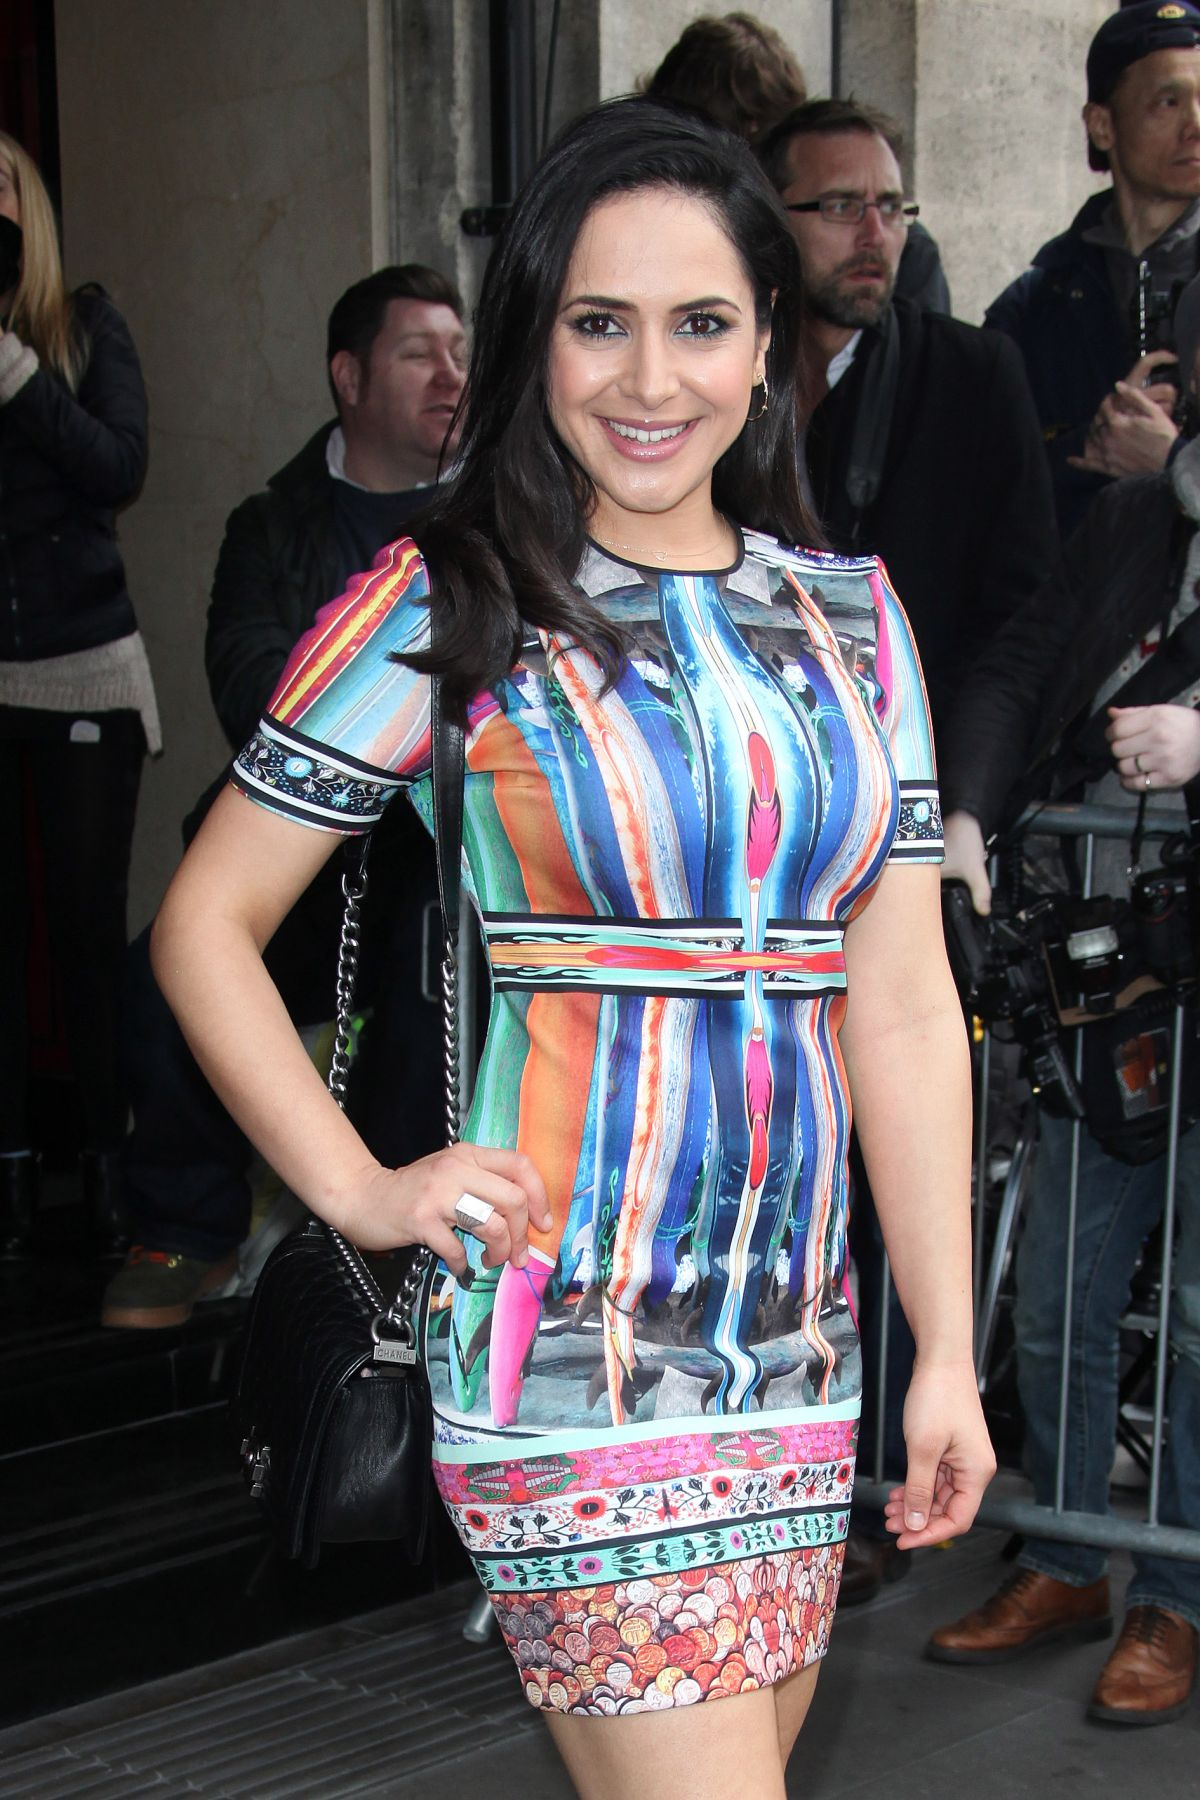 NAZANEEN GHAFFAR at TRIC Awards 2014 in London